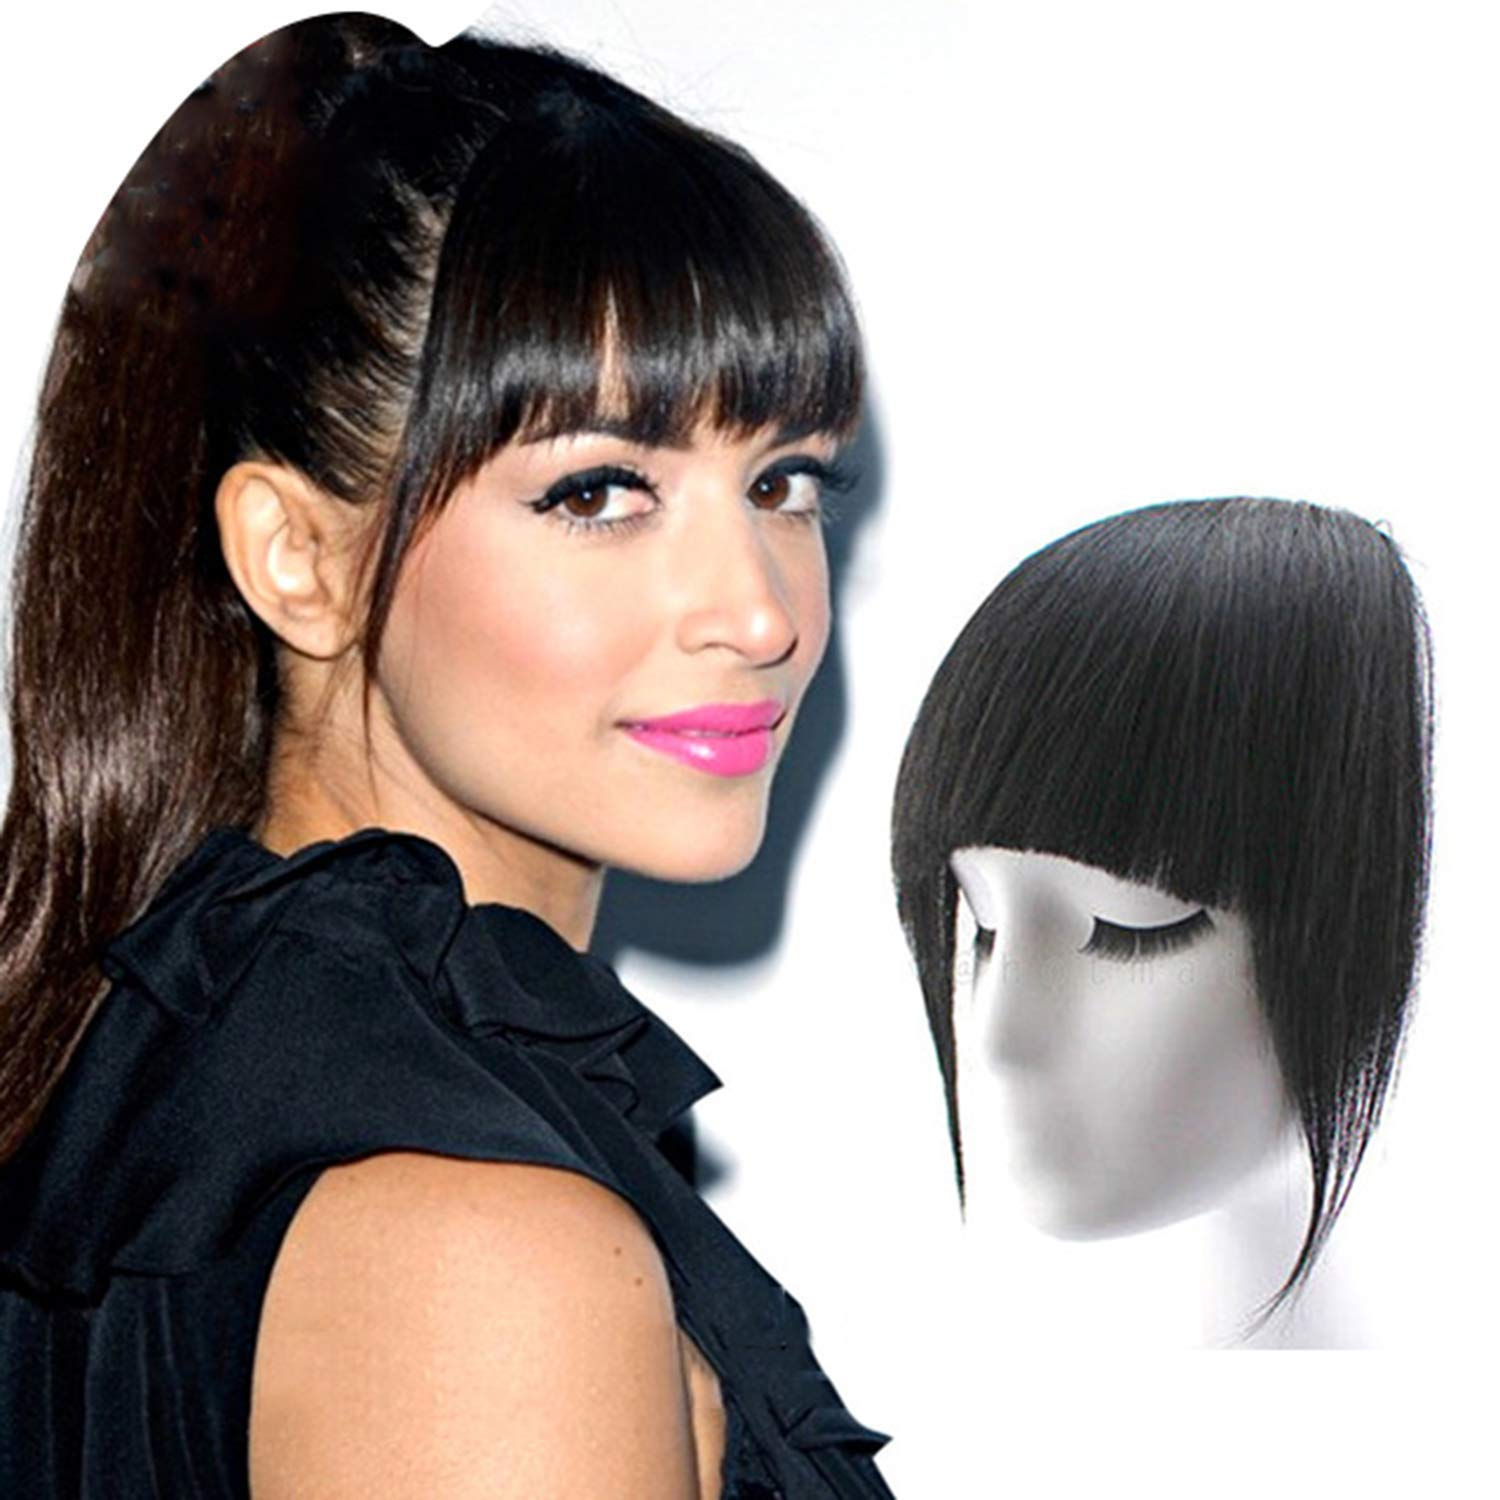 Fully 100% Natural Look Human Hair Bangs/Fringes Extension For Women And  Girls Hair Front Hair Flicks (Center Cut Black) Pack Of 10